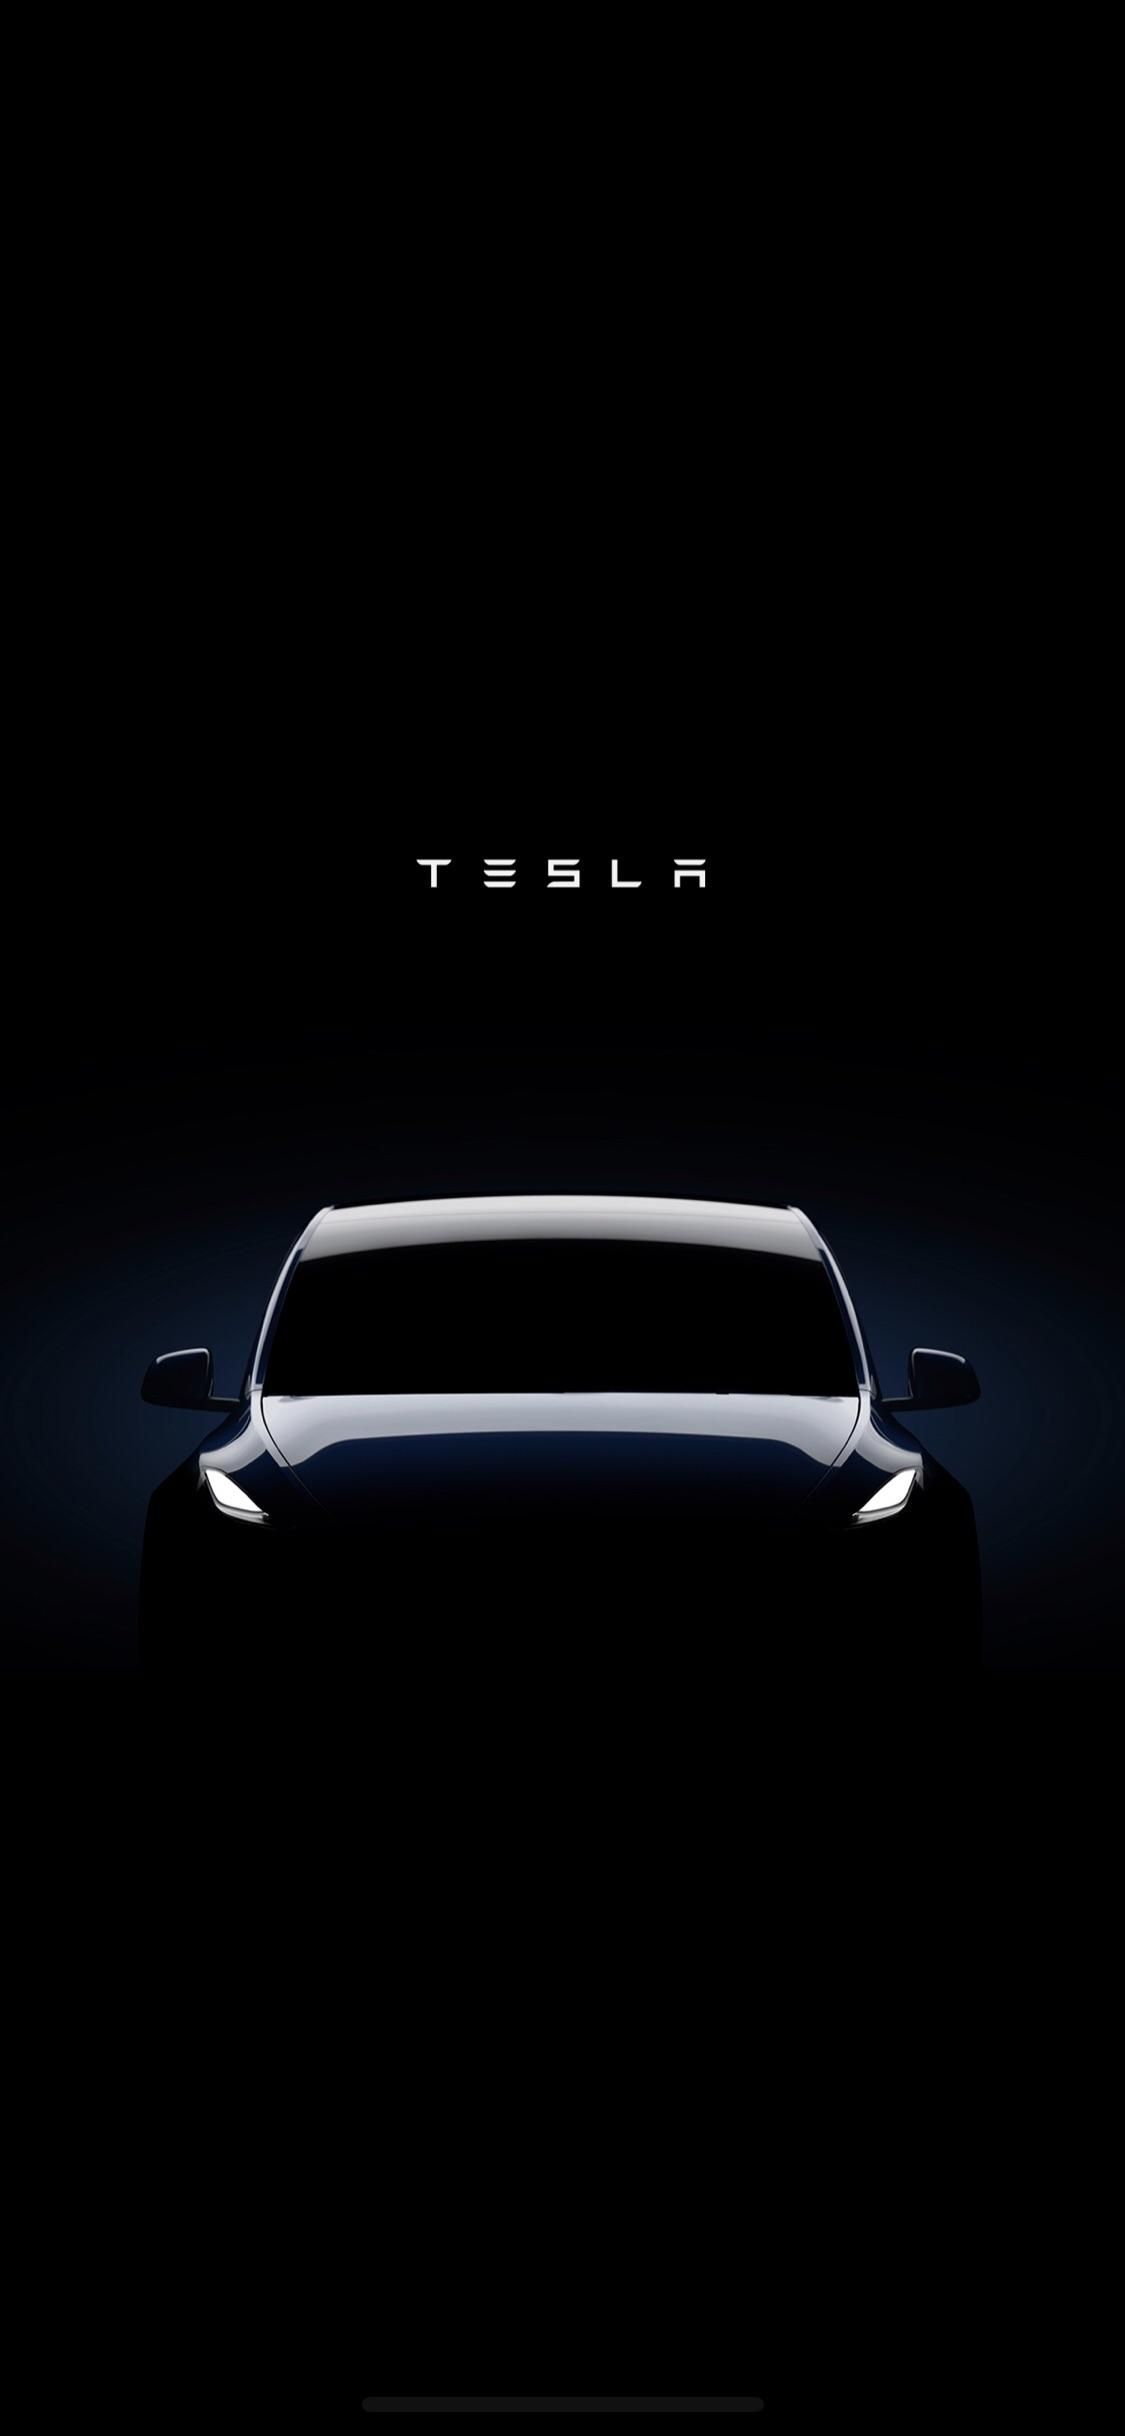 When I Saw Teslamotors S Cybertruck For The First Time I Thought This Looks Like It S Made Uzayda Yolculuk Super Arabalar Yolculuk